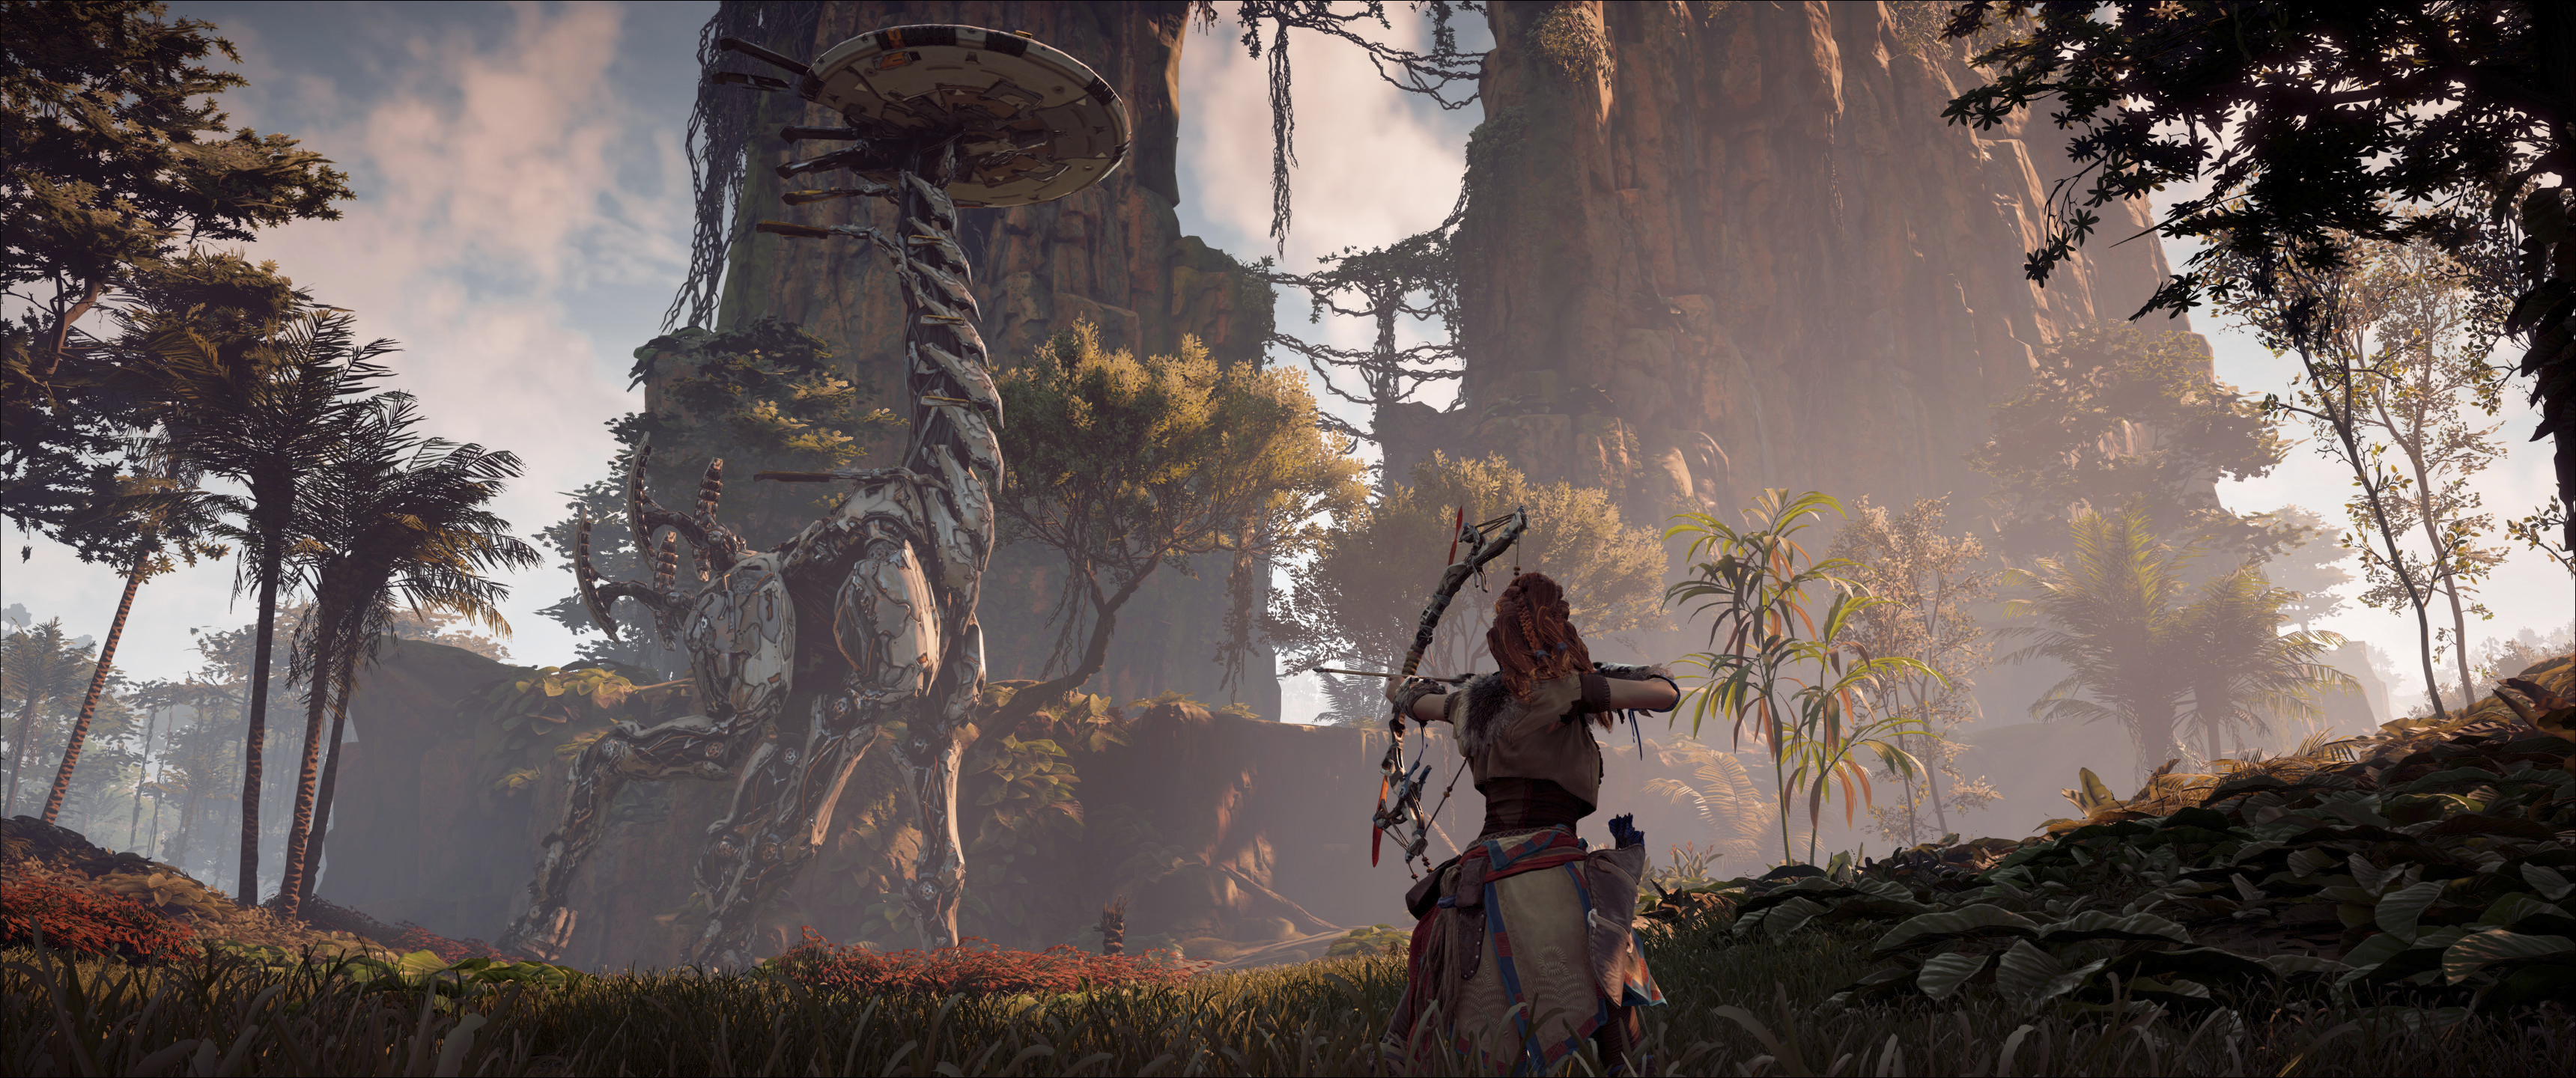 horizon zero dawn screenshot 1